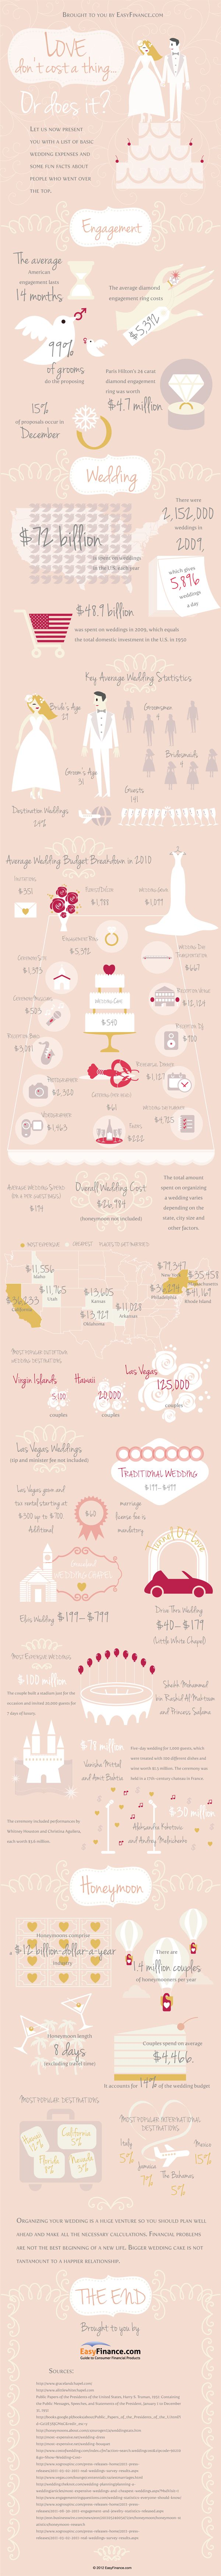 Wedding Budget Infographic Some interesting breakdowns in here. It's amazing how much some things cost. %_%